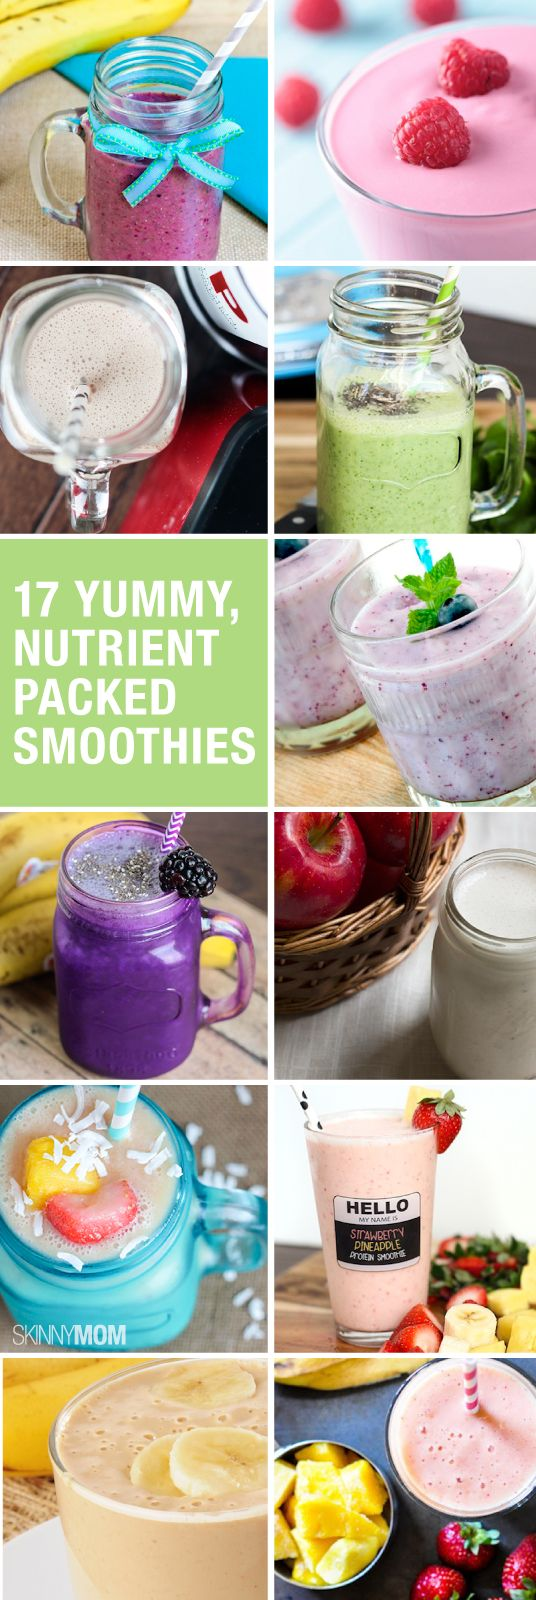 17 smoothies you need to try.